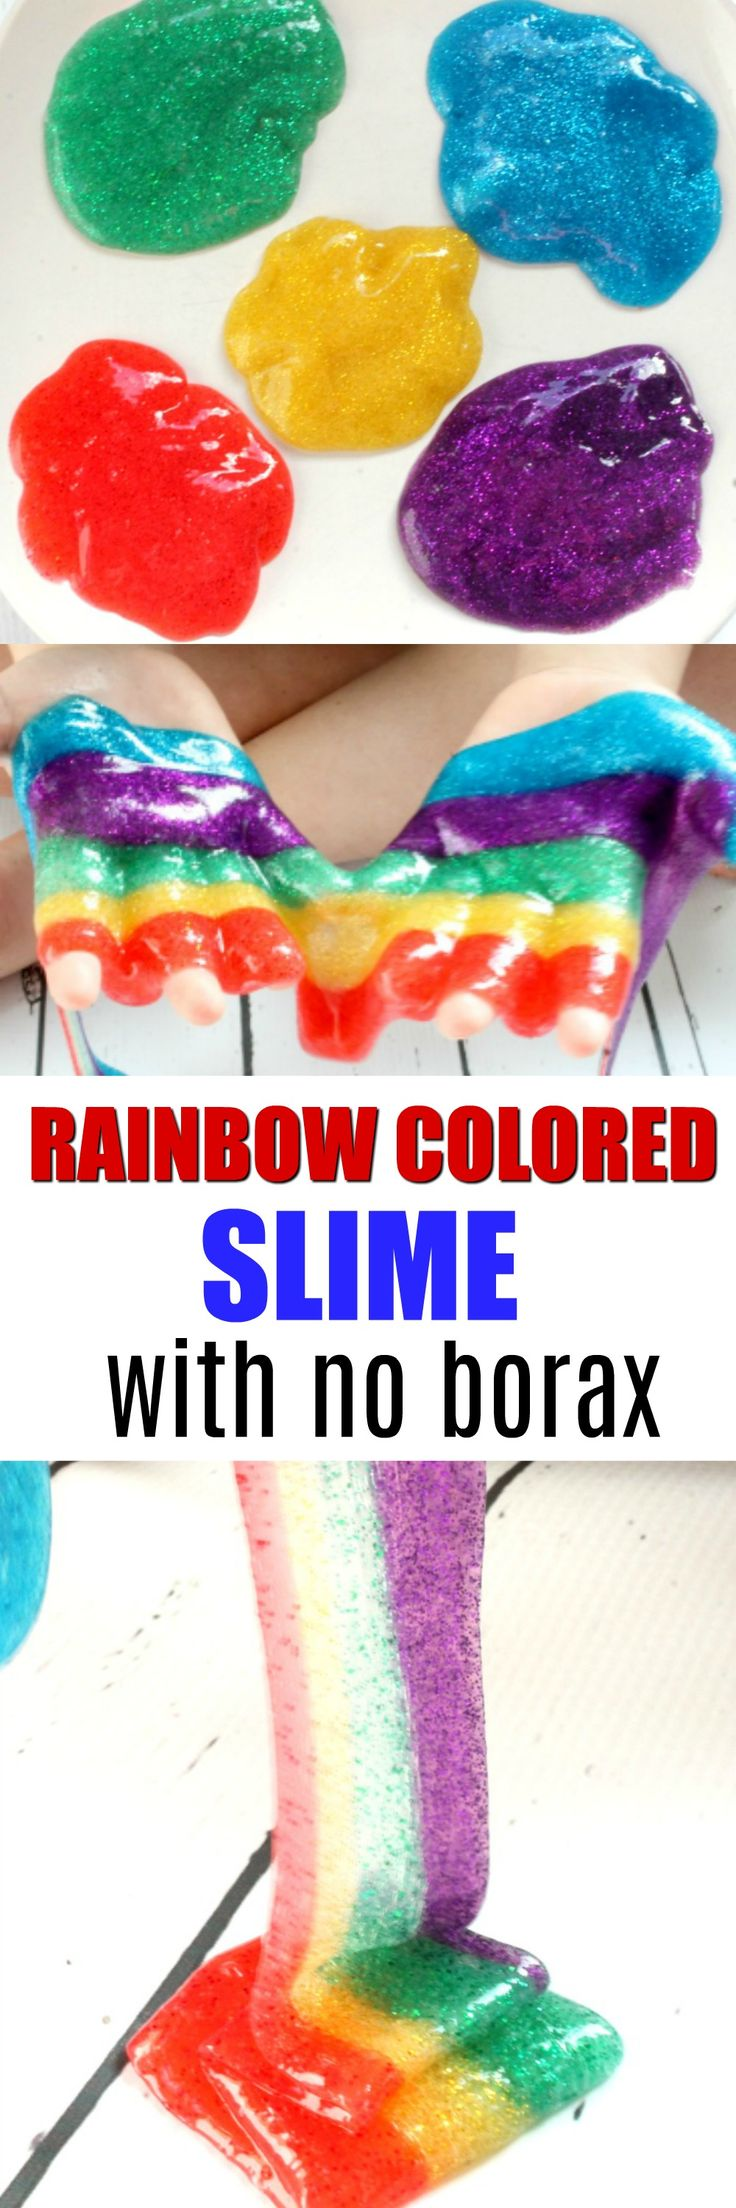 Rainbow Slime. Easy NO BORAX Rainbow Slime. Make this Borax Free Slime with just 3 ingredients. Add glitter for extra sparkle. We love this fun rainbow slime which is a great way to teach colors.